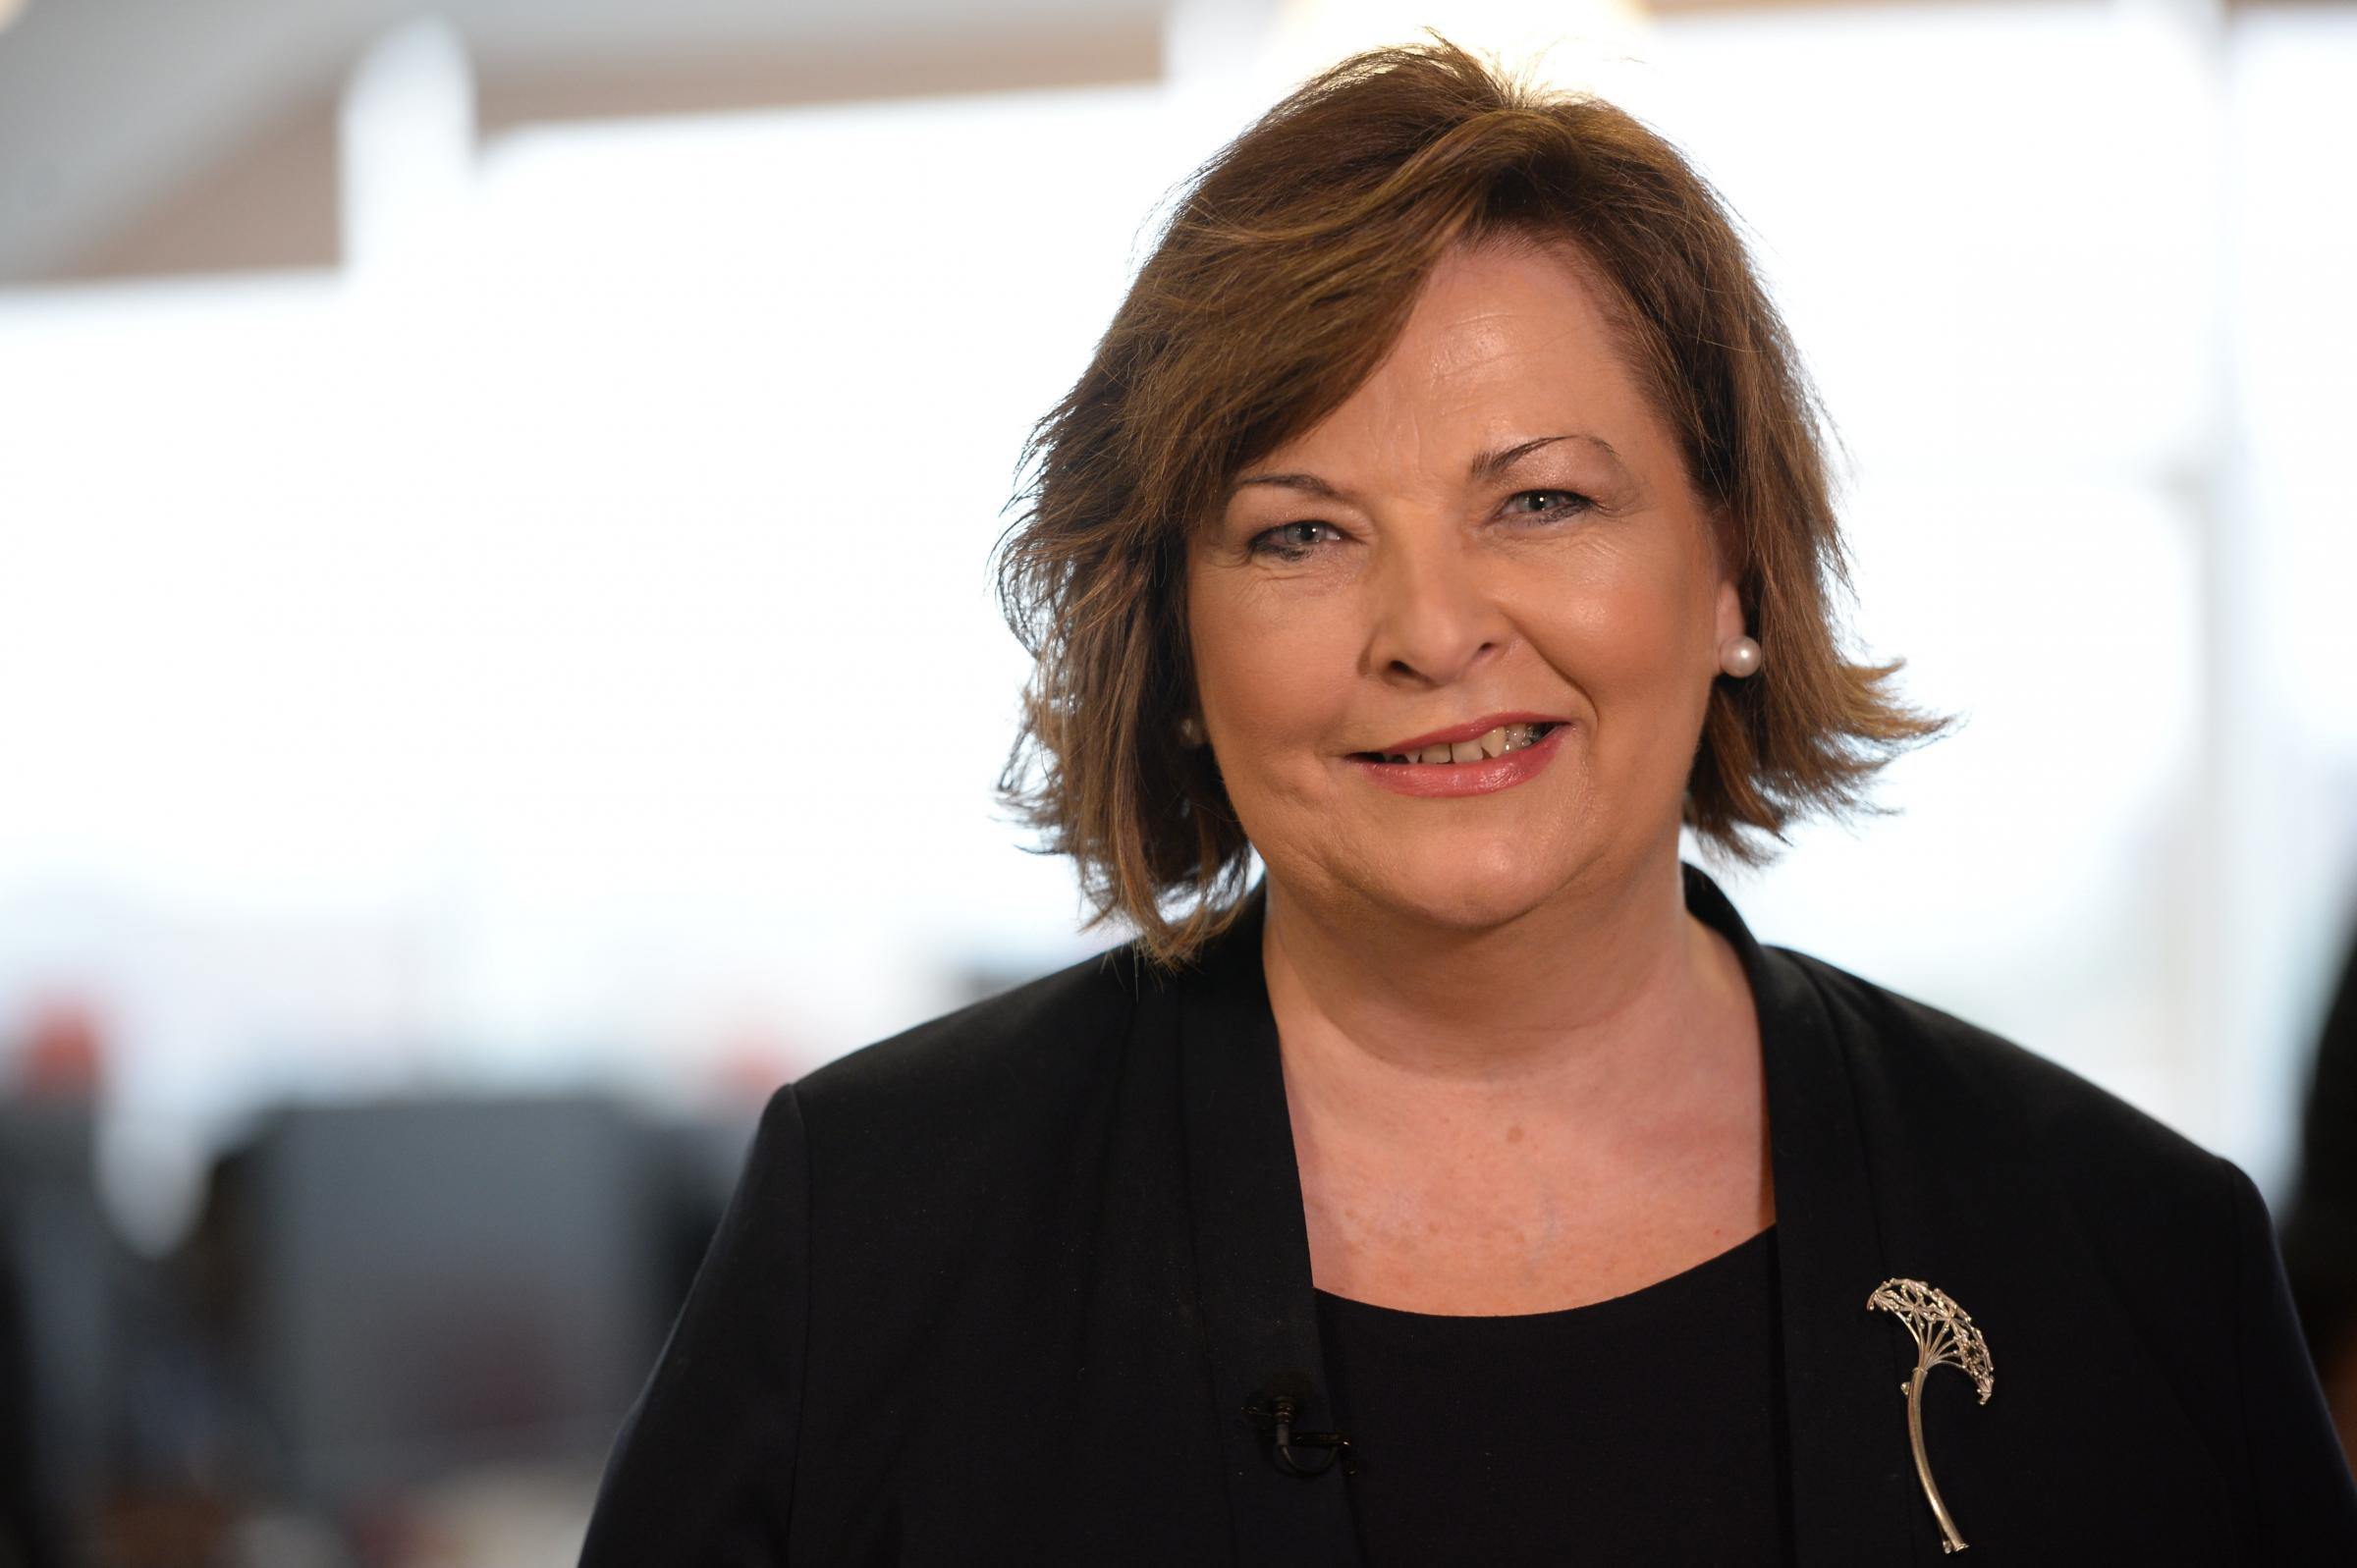 Fiona Hyslop, Cabinet Secretary for Culture, Tourism and External Affairs, praised the 'vital role' played by libraries